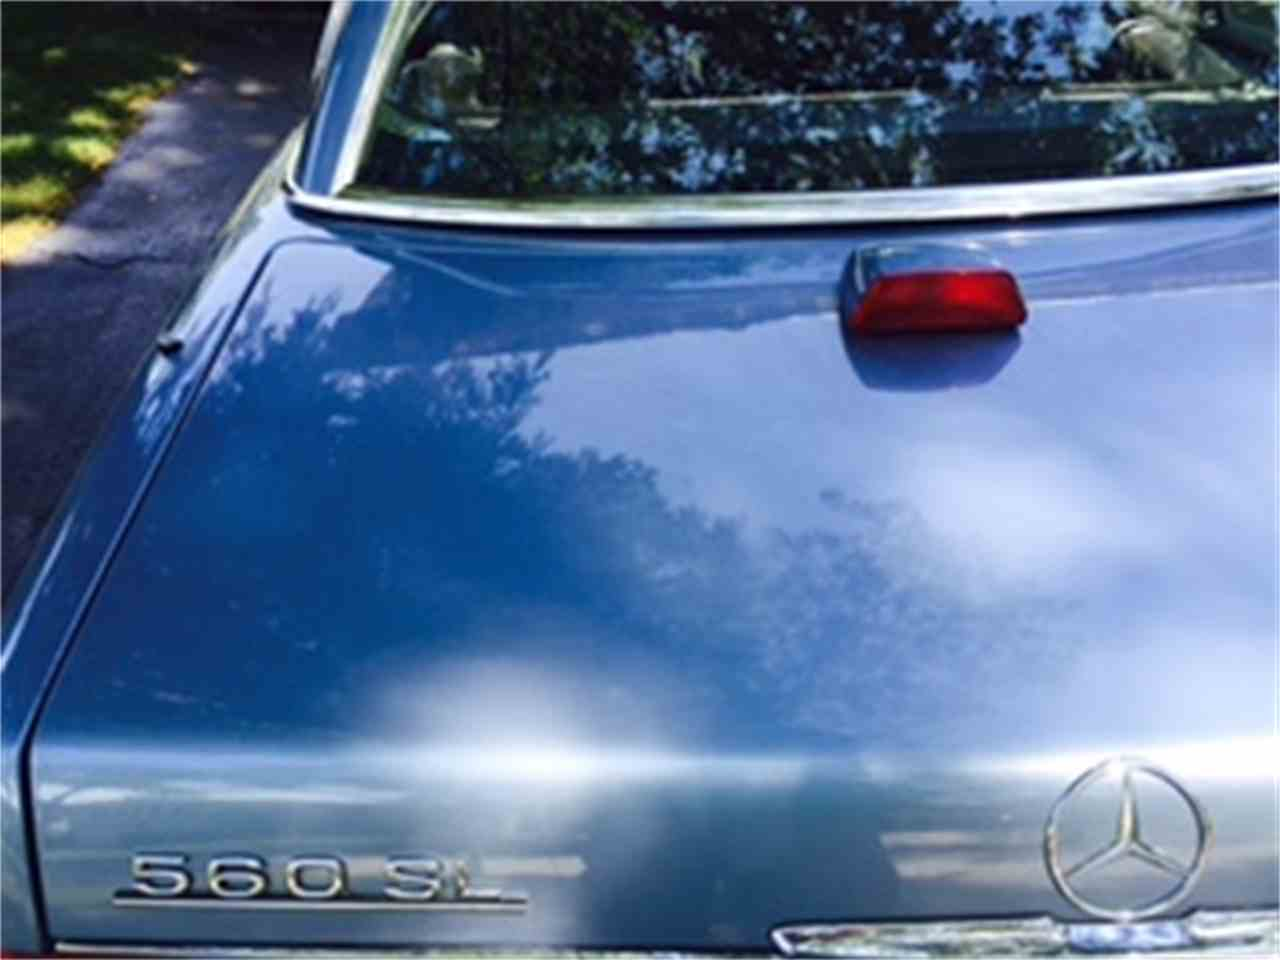 Large Picture of '86 Mercedes-Benz 560SL located in DOWNERS GROVE Illinois - $7,900.00 Offered by a Private Seller - JP35